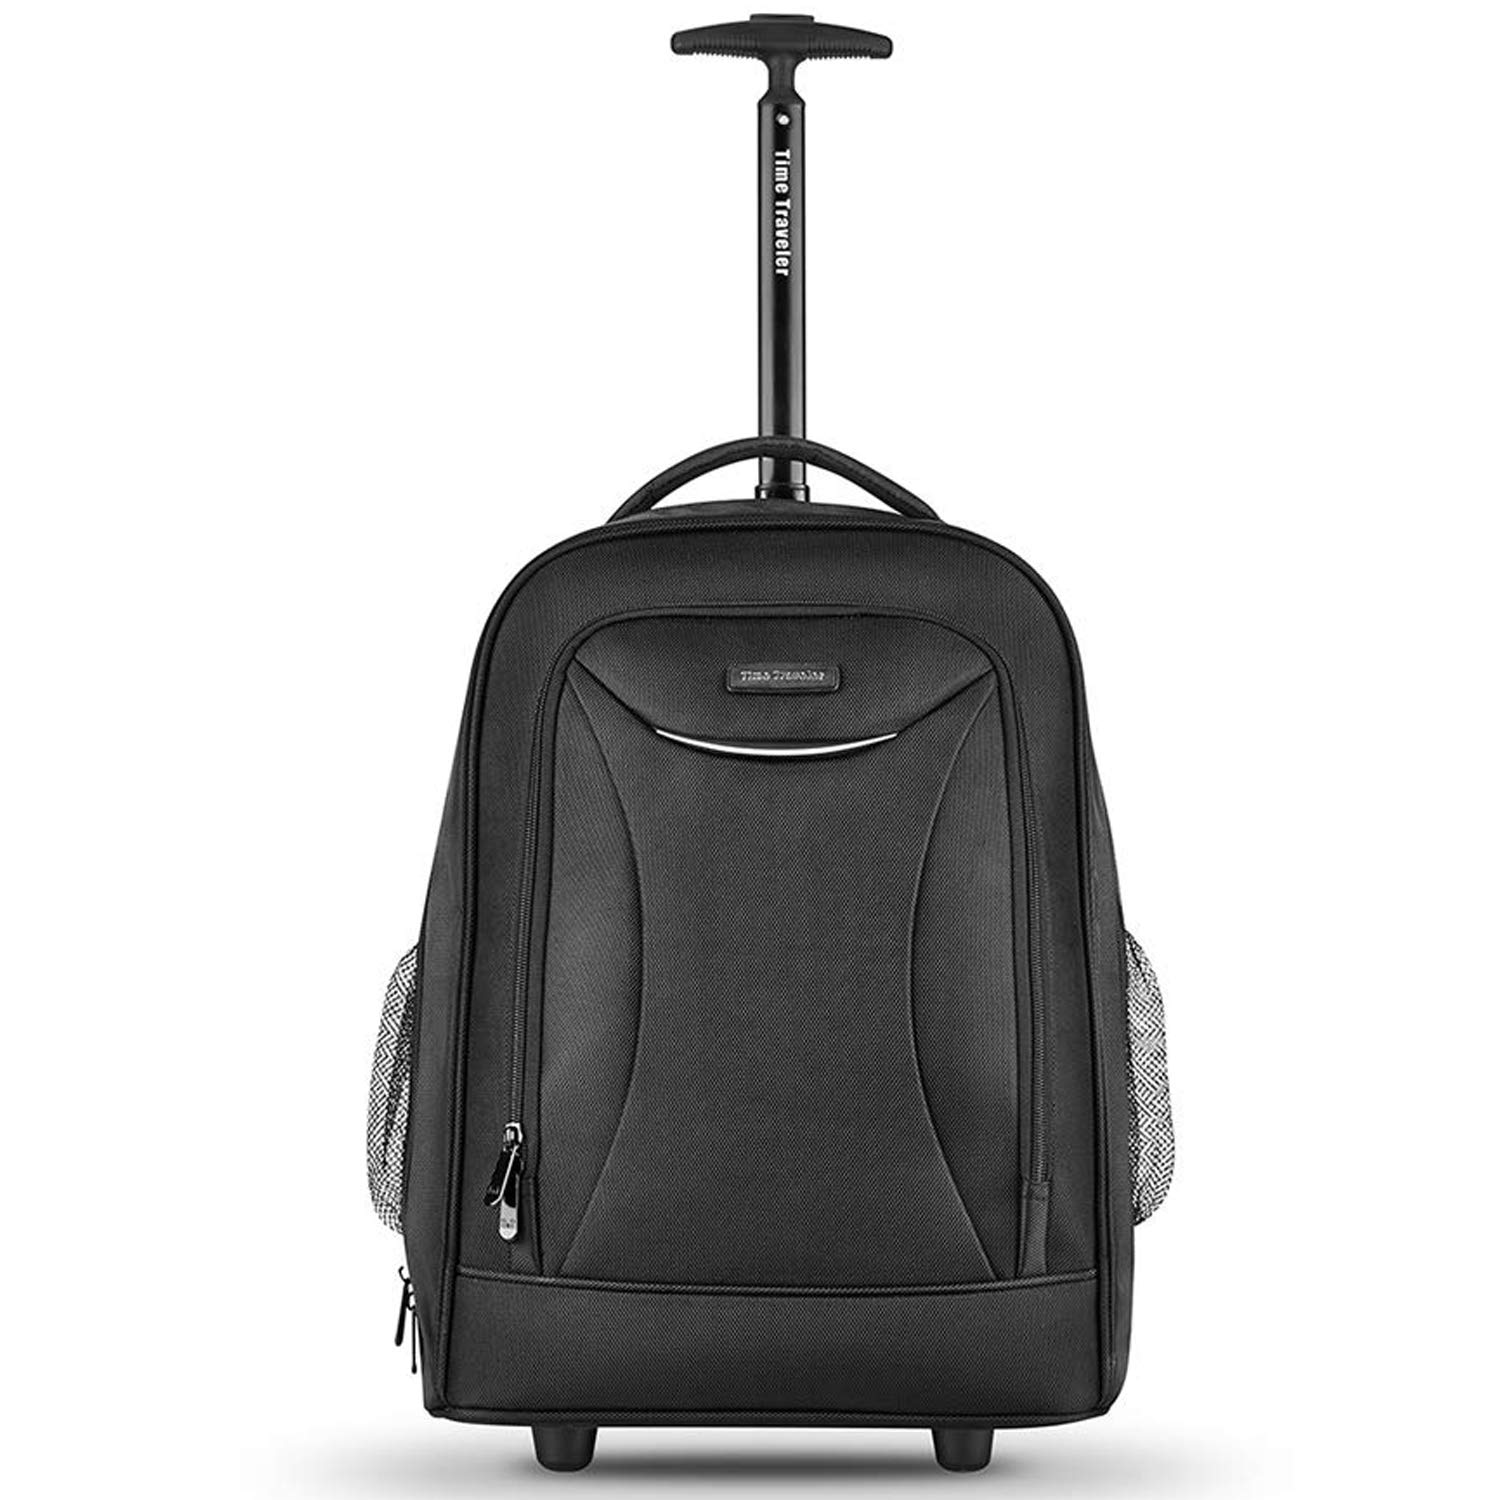 Black Rolling Backpack, Wheeled Laptop Backpack, Carry-on Luggage Suitcase